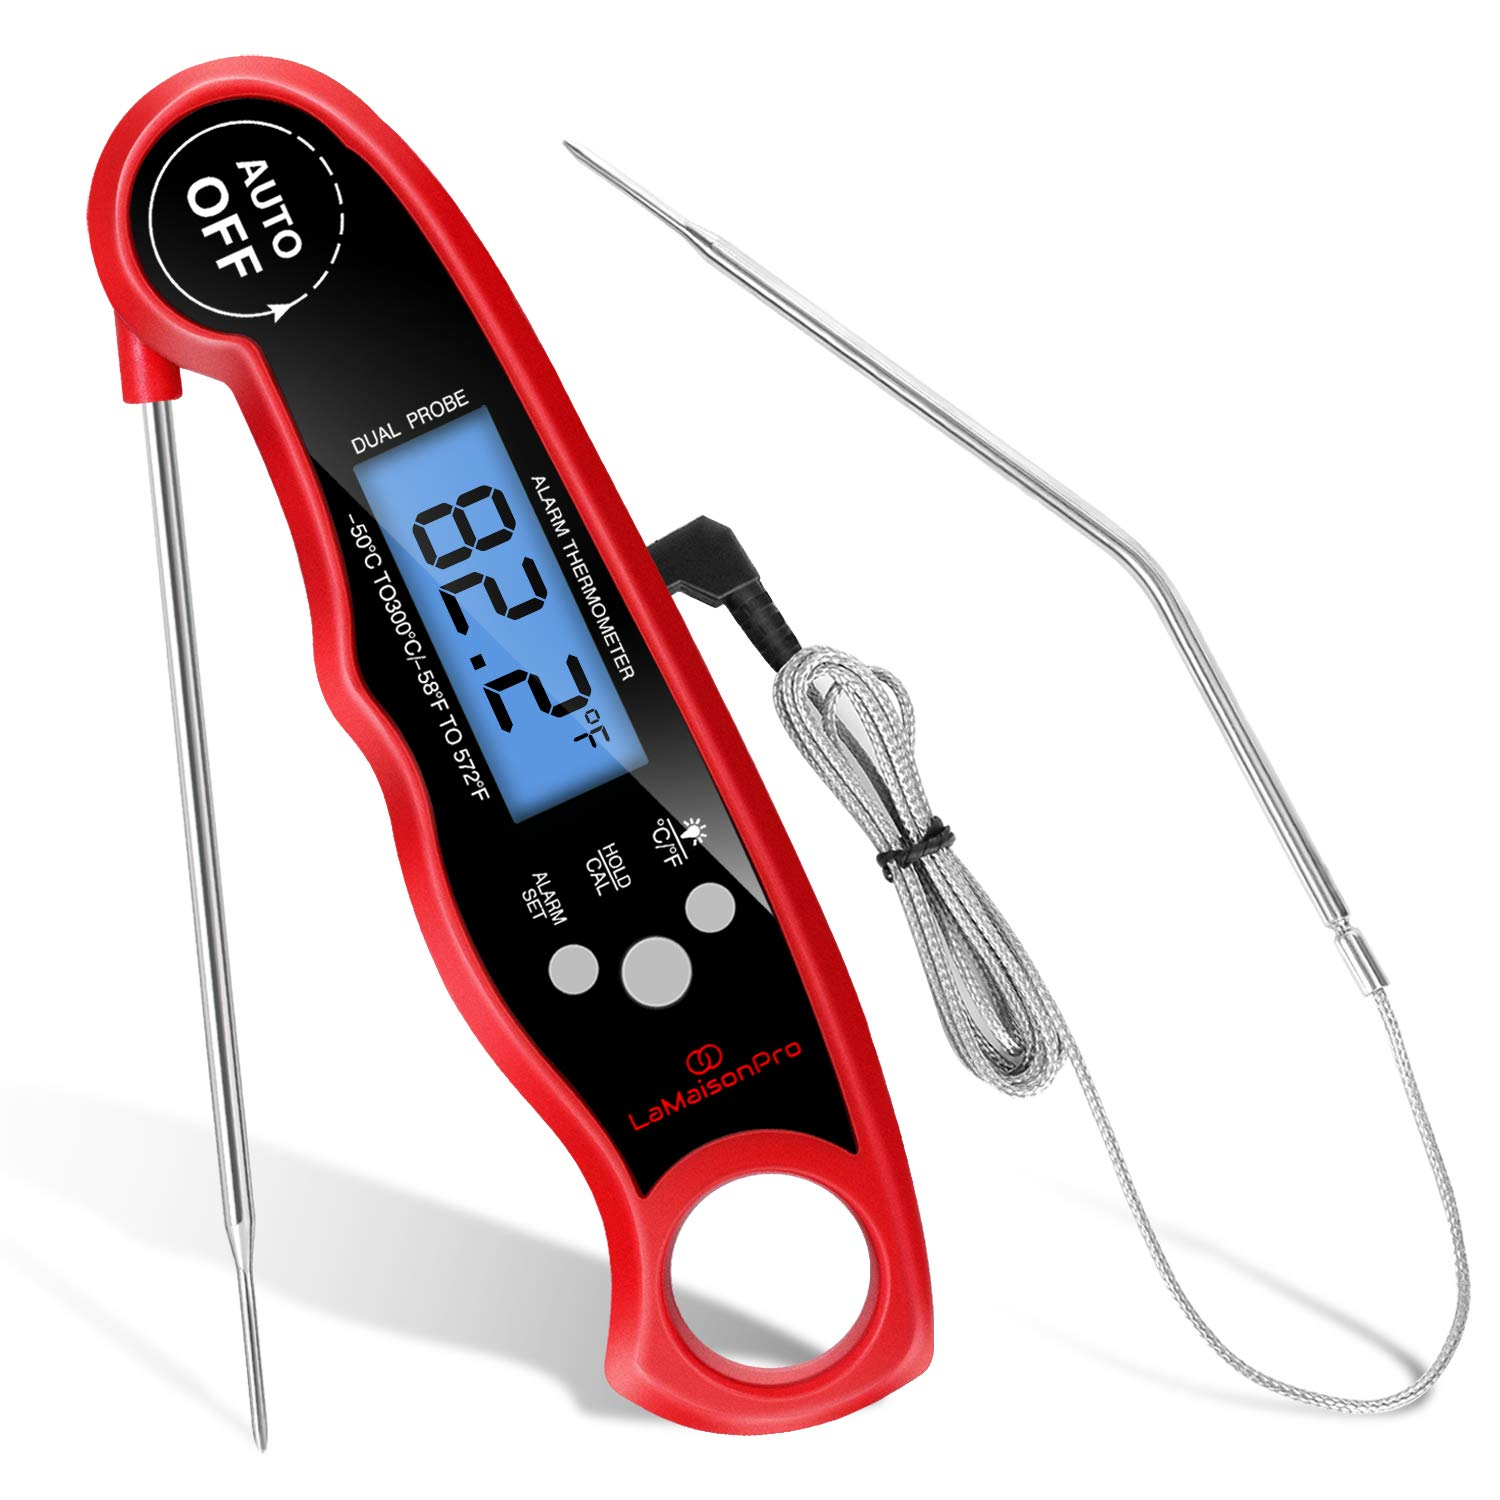 Digital Meat Thermometer for Grill Instant Read,Food Thermometer for Cooking,Candy Thermometer,Grill Thermometer Digital Probe,Dual Probe Oven Safe Kitchen Cooking BBQ Smoker Baking Grilling (Red)